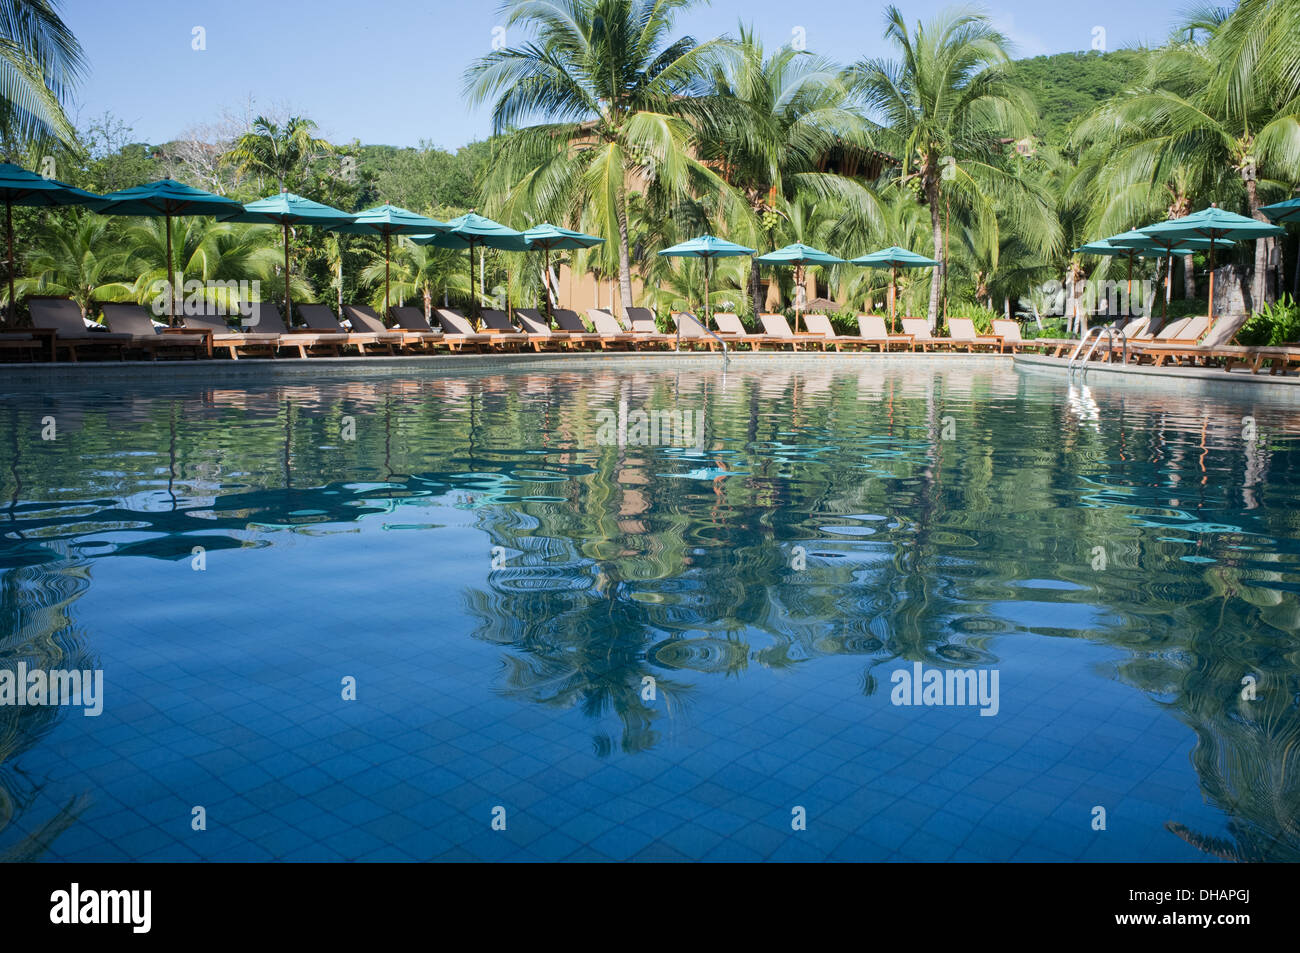 One of several swimming pools at Four Seasons Costa Rica on the Peninsula Papagayo in the Guanacaste region of the west coast. - Stock Image